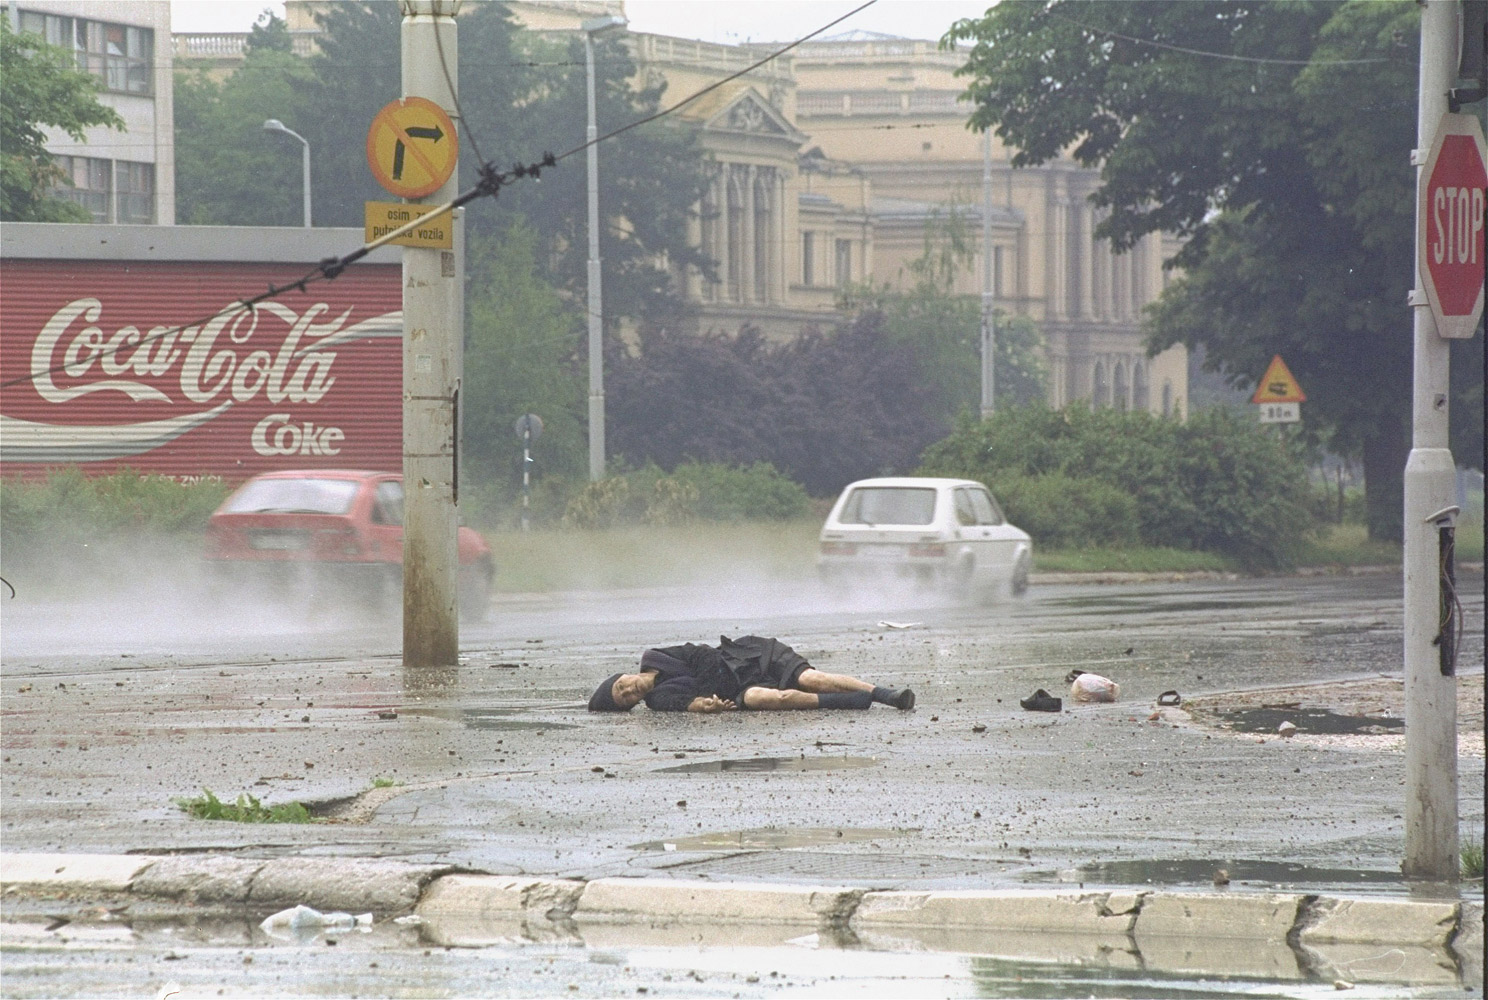 June 11, 1992. Sarajevo. On Thursday, June 11, 1992, I was in an a 'soft' (non-armored) car speeding out of central Sarajevo on the infamous 'Sniper Alley' when, out of the corner of my eye, I saw a body in the street. The dead woman had been walking towards Sarajevo, presumably from the countryside, given her attire, and had passed along a stretch of road exposed to Bosnian Serb or Serb snipers. Someone had shot her in the head and her body lay exposed on the road as cars sped by at top speed to avoid a similar fate.I approached the body, crouched down low behind a metal garbage container in order to make a photo, always aware that I might be visible to another sniper. At some point I stopped, framed the photo with an 80-200 f2.8 zoom lens and waited for something to fill the background. A car sped by. I lowered my shutter speed slightly to try and capture the movement of what I assumed would be another car passing by soon. One did and I released the shutter.At this stage very, very few journalist were working in Sarajevo due to the dangerous conditions and difficulty of accessing the city. There was much interest in the rapidly deteriorating situation there. The photo was used on scores of newspaper front pages around the world. Some years later I was sent a photo taken at a photo exhibition in Sarajevo. One whole wall of the exhibition consisted of front pages featuring this photo.